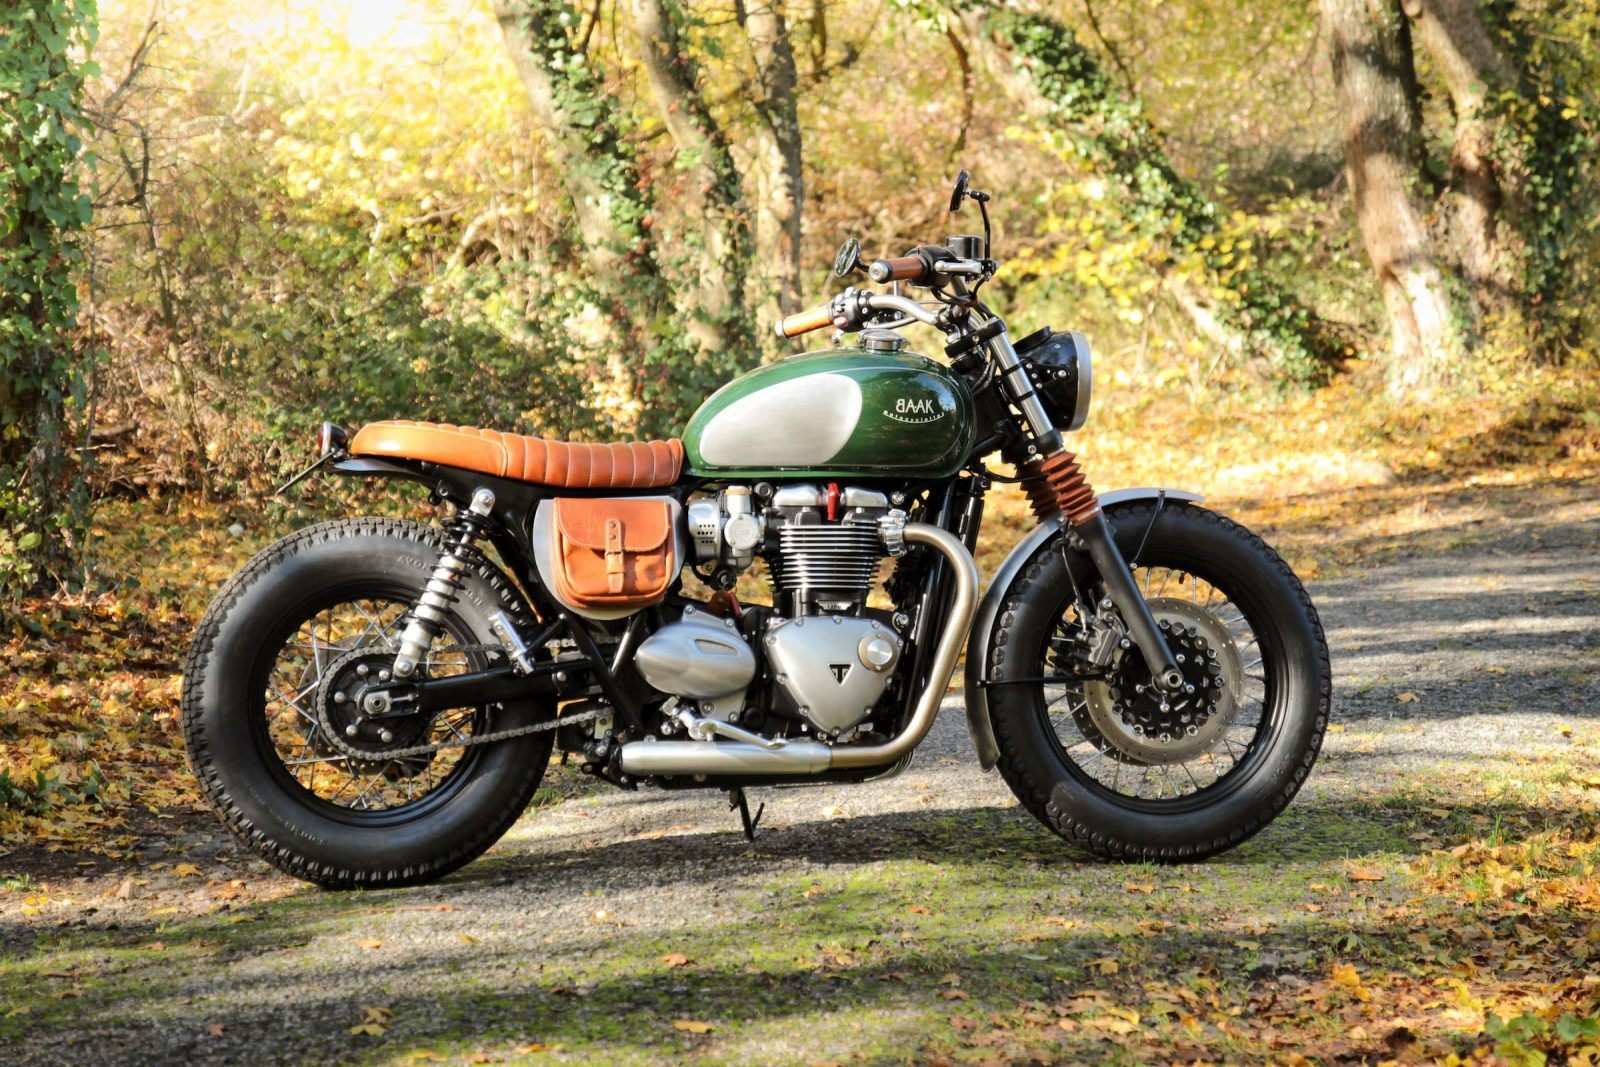 Baak Motorcycles Custom Triumph Bonneville T120 Awesome And